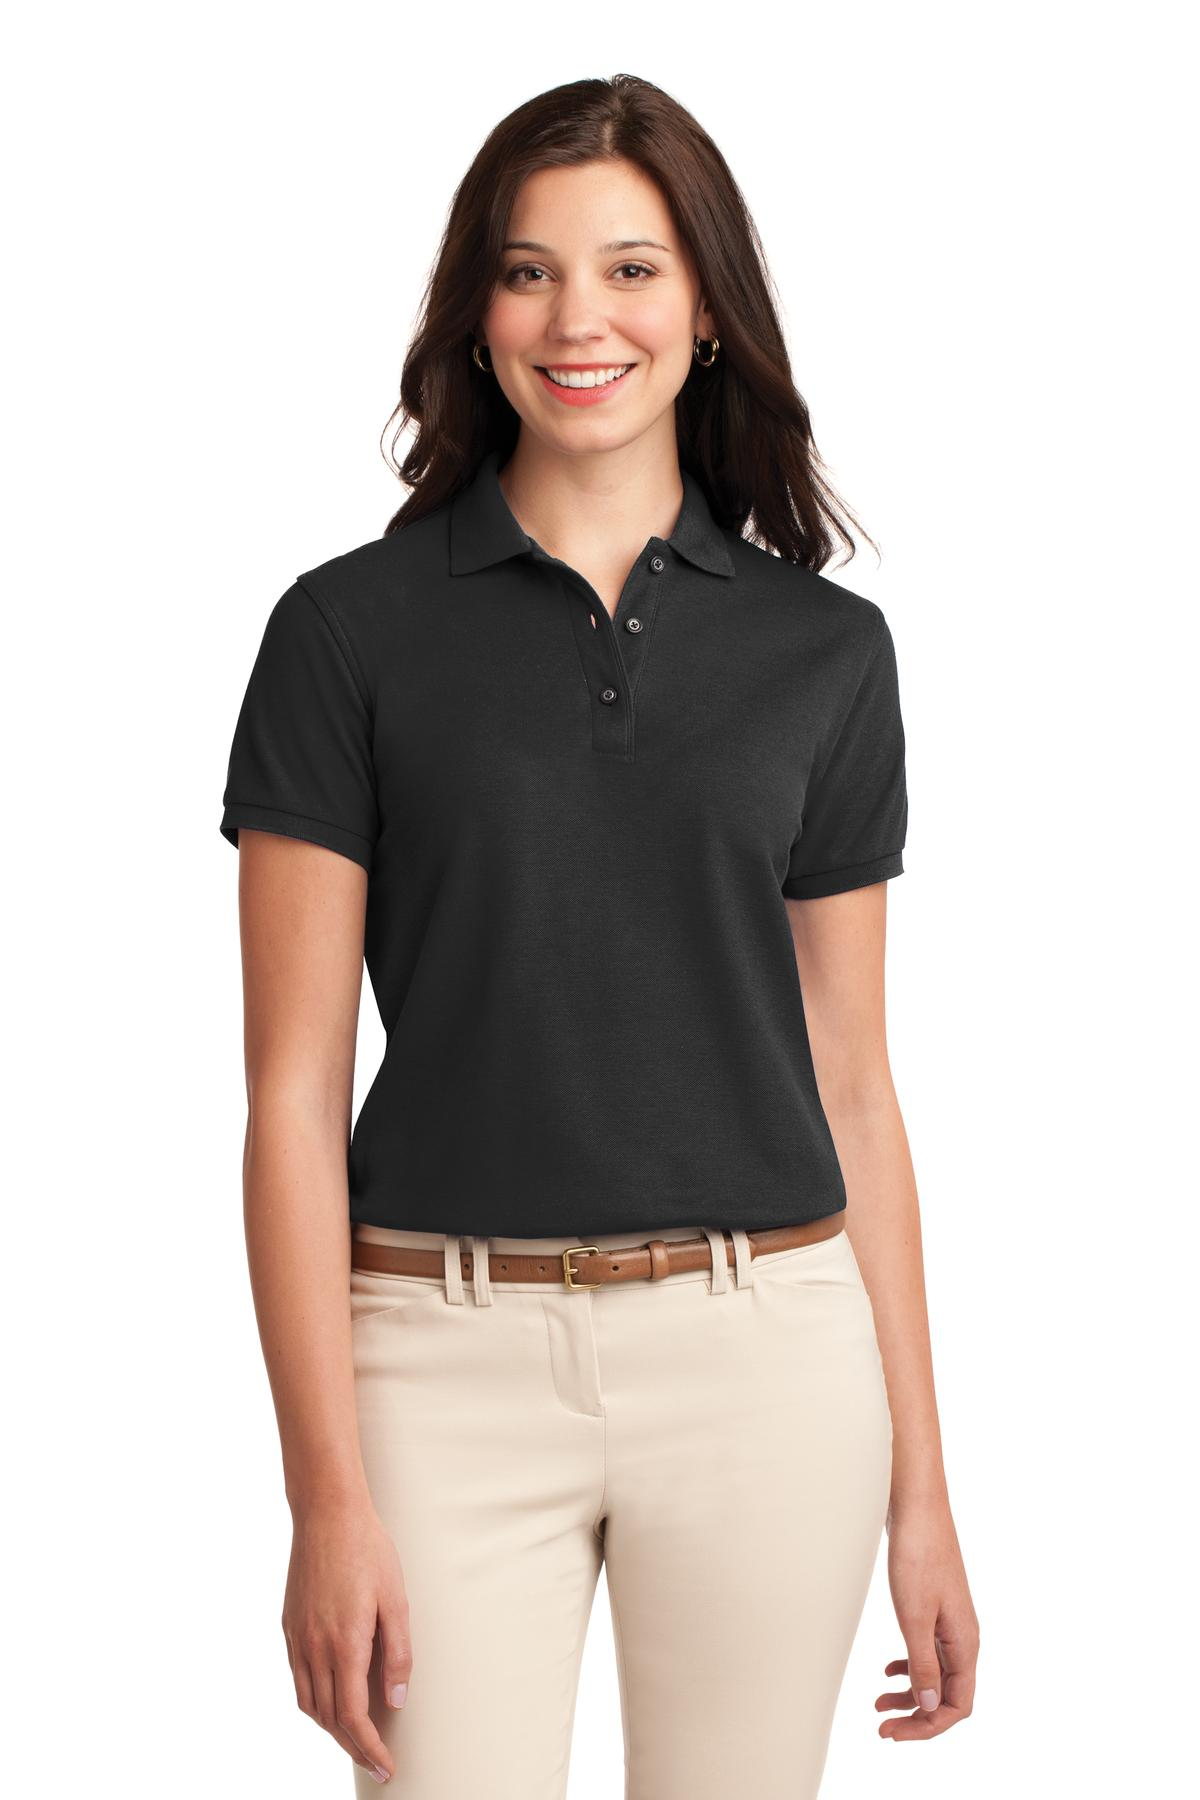 Lime Port Authority Ladies Silk Touch Polo.